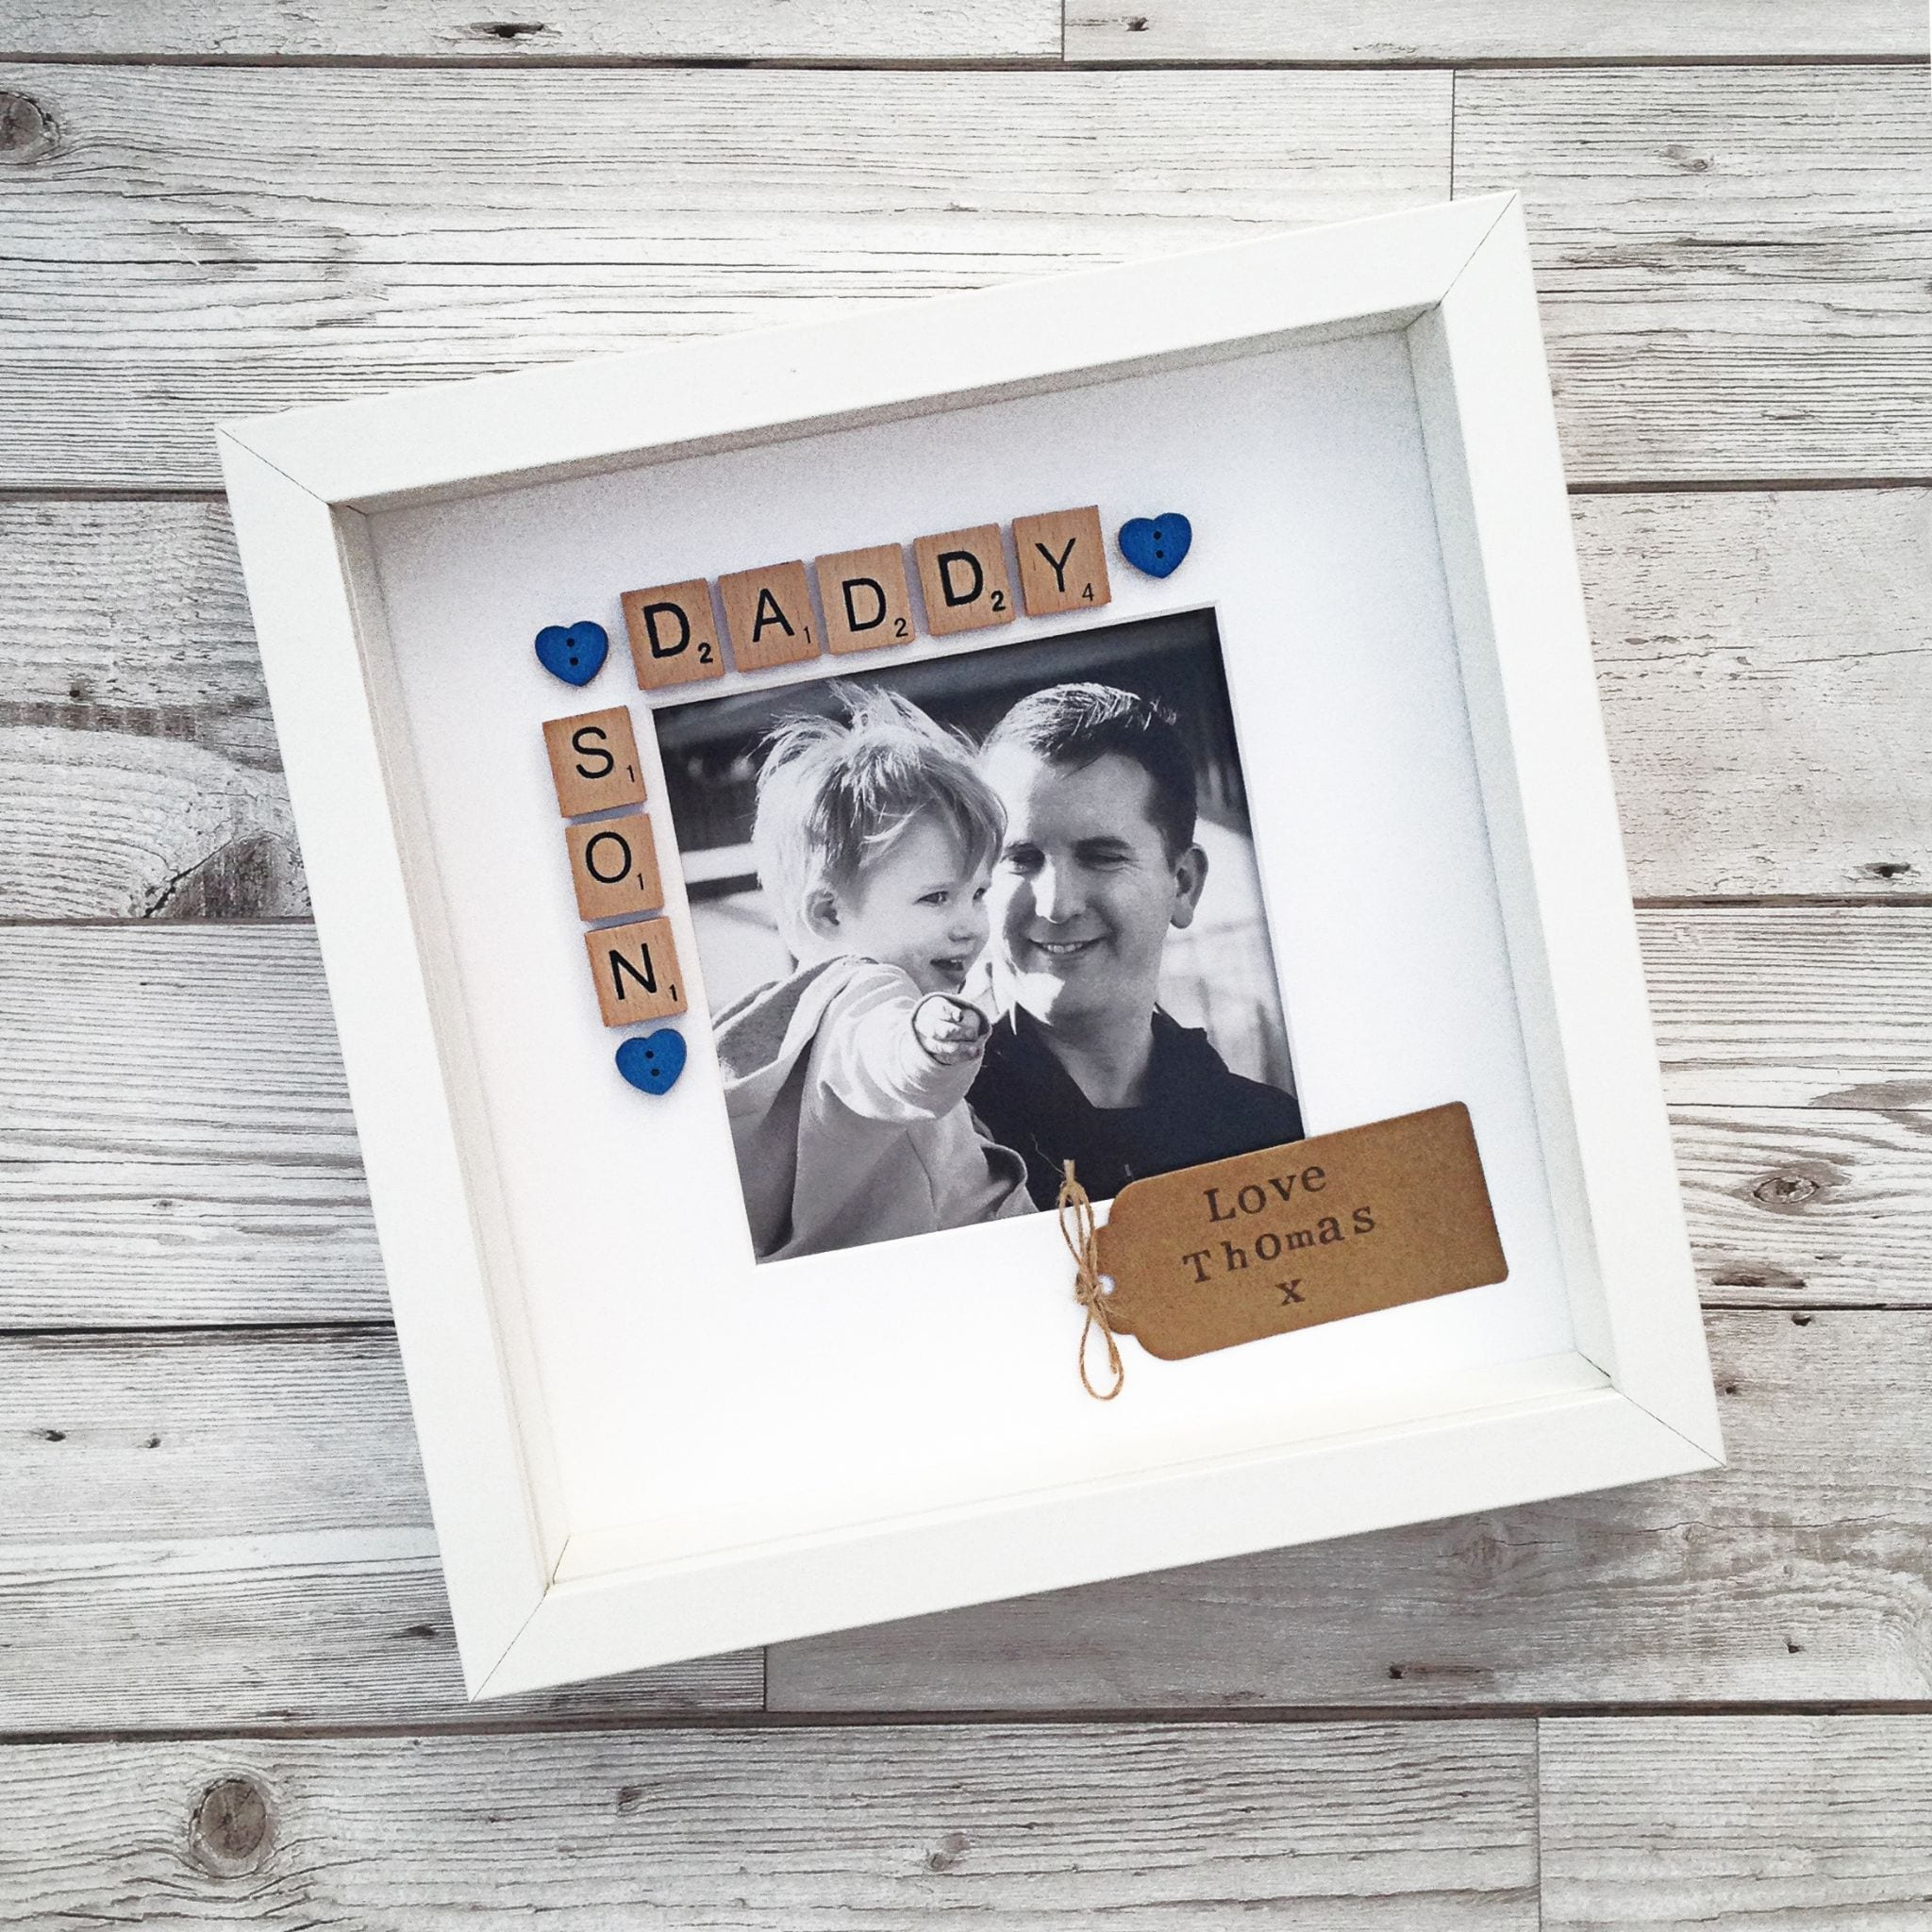 daddy-and-son-scrabble-frame-20179-p.jpg